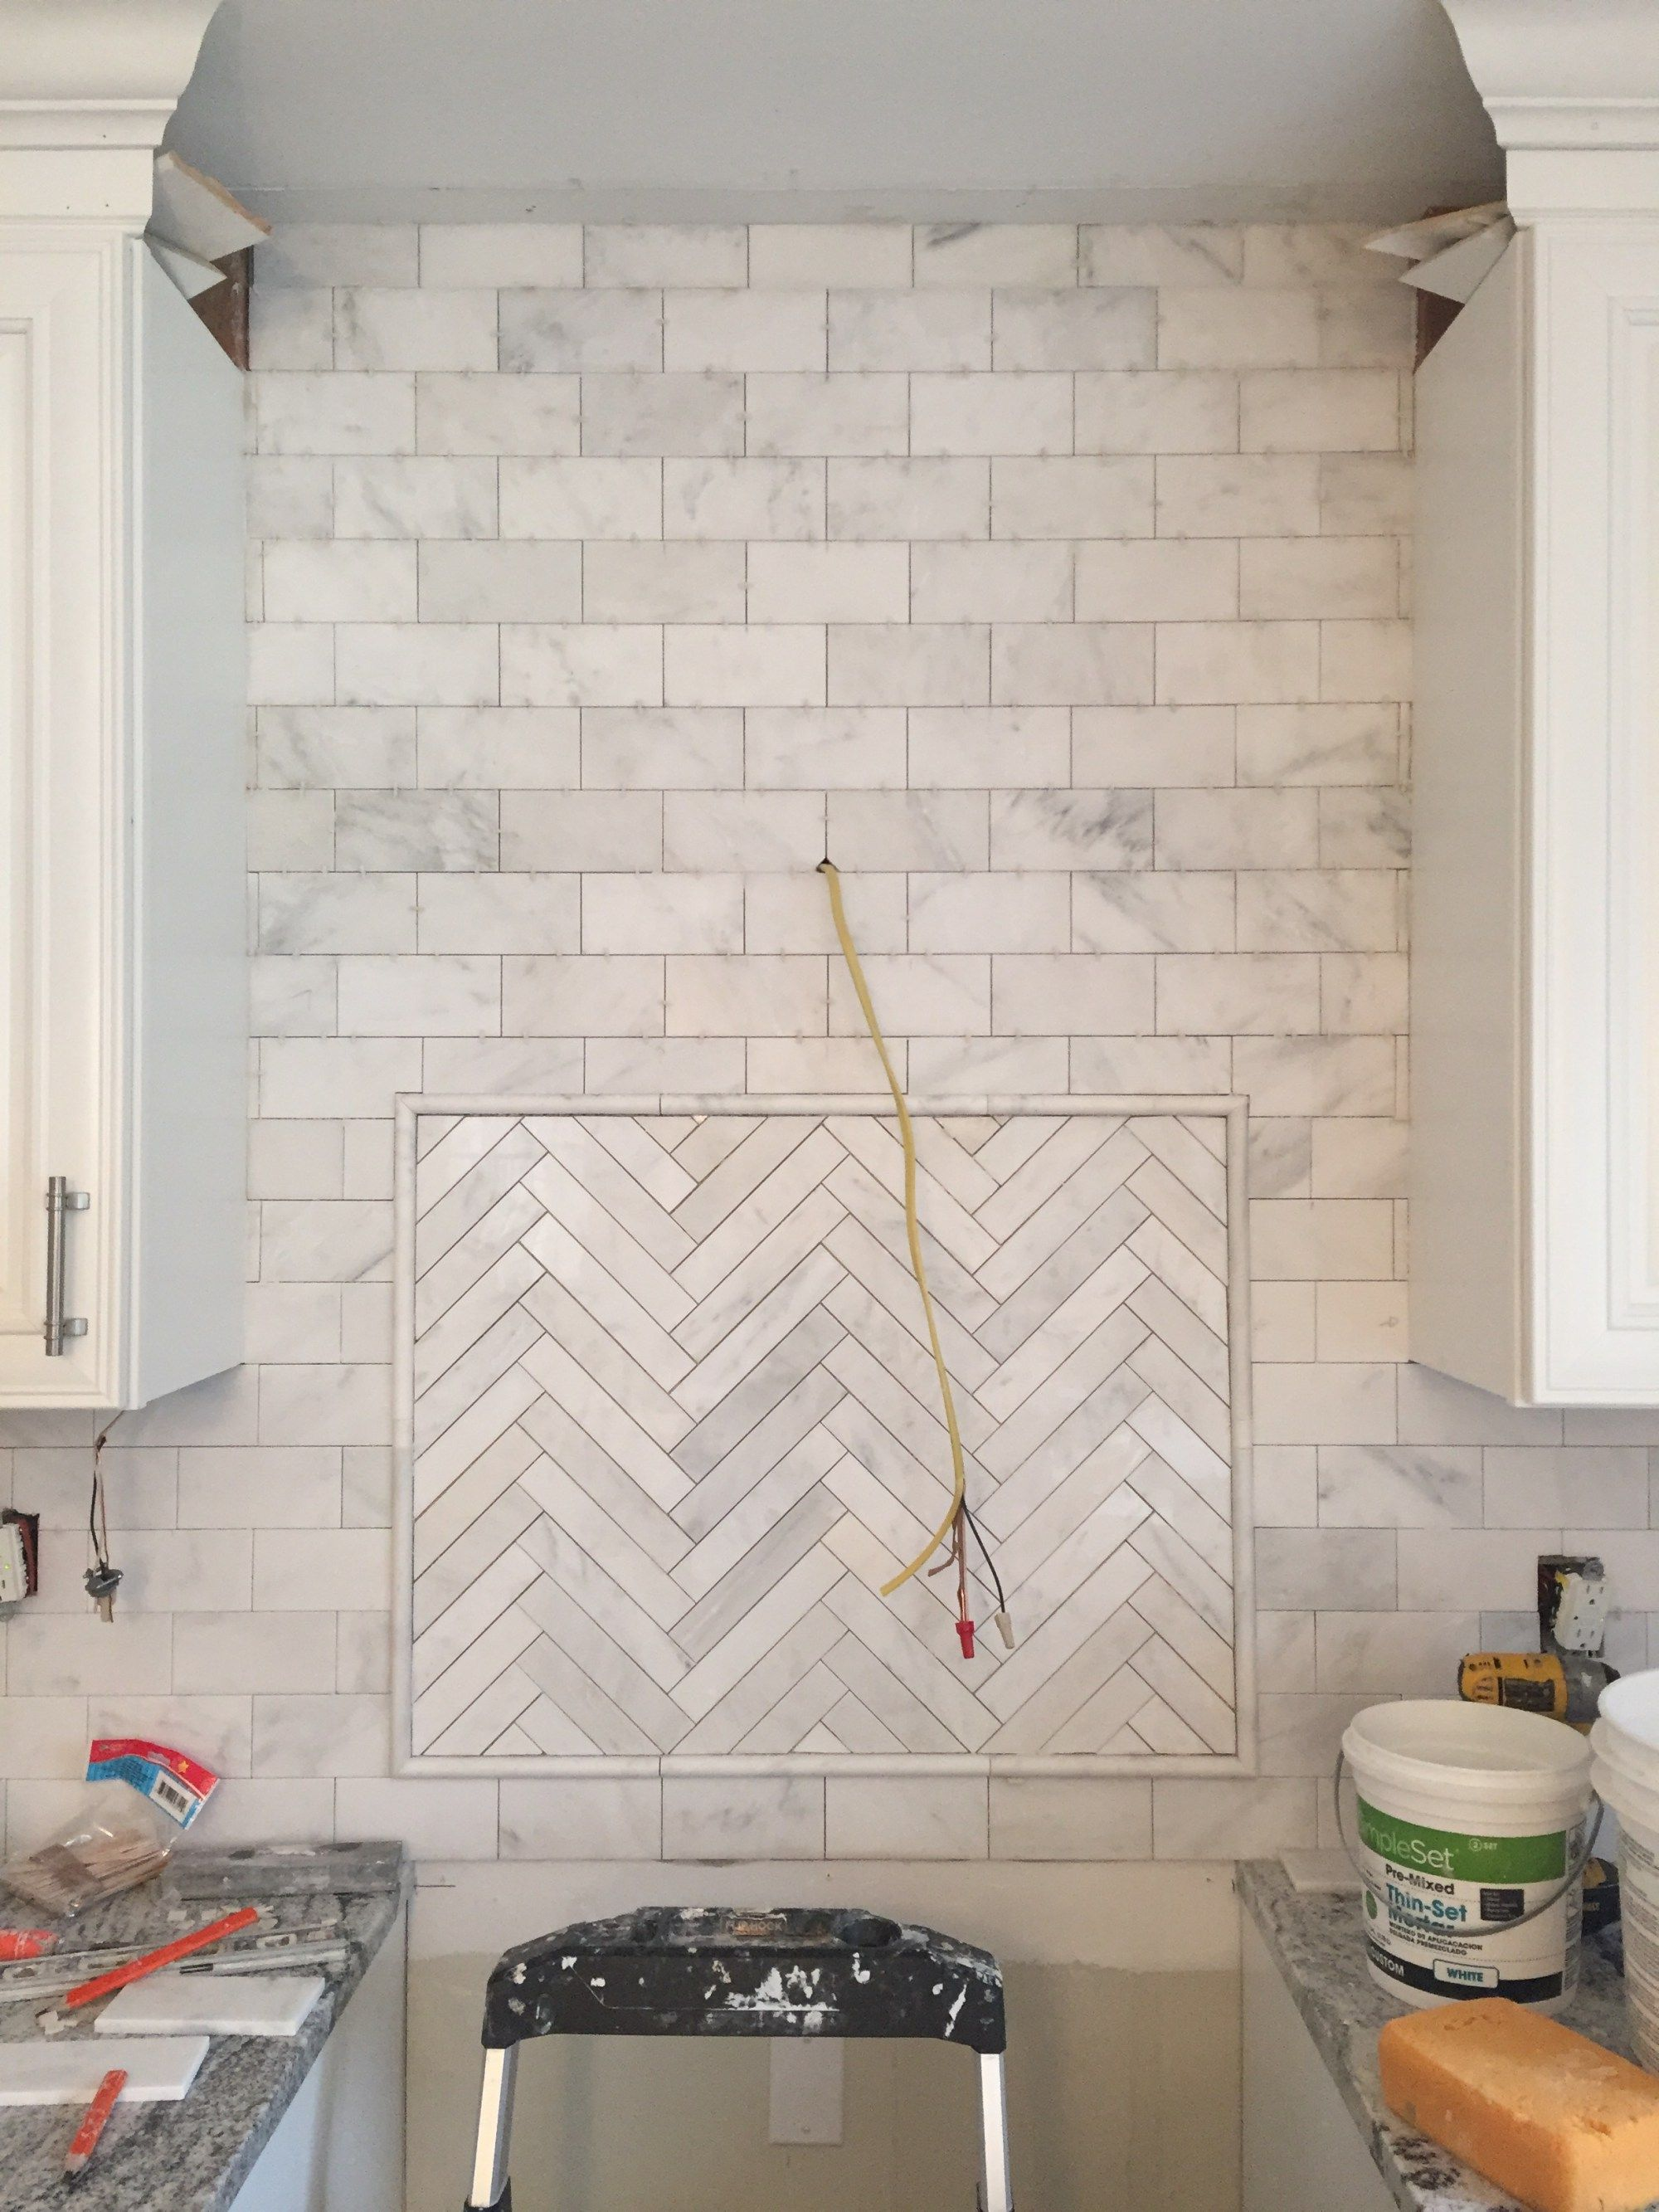 - Carrera Marble Subway Tiles For Backsplash. Carrera Marble